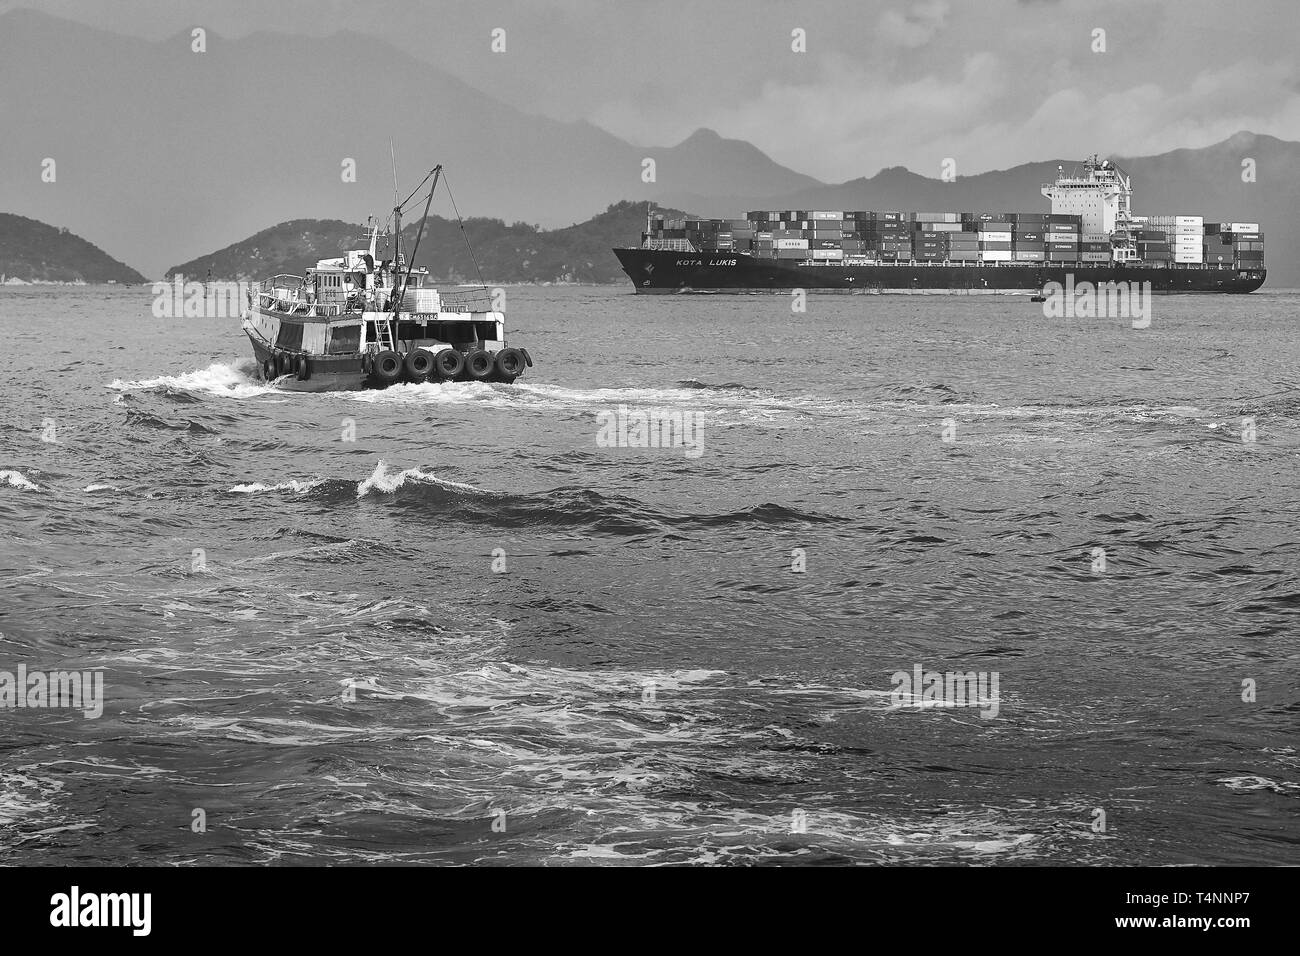 Container Ship KOTA LUKIS, Leaves The Kwai Tsing Container Terminals In Hong Kong And Heads Towards The East Lamma Channel. - Stock Image